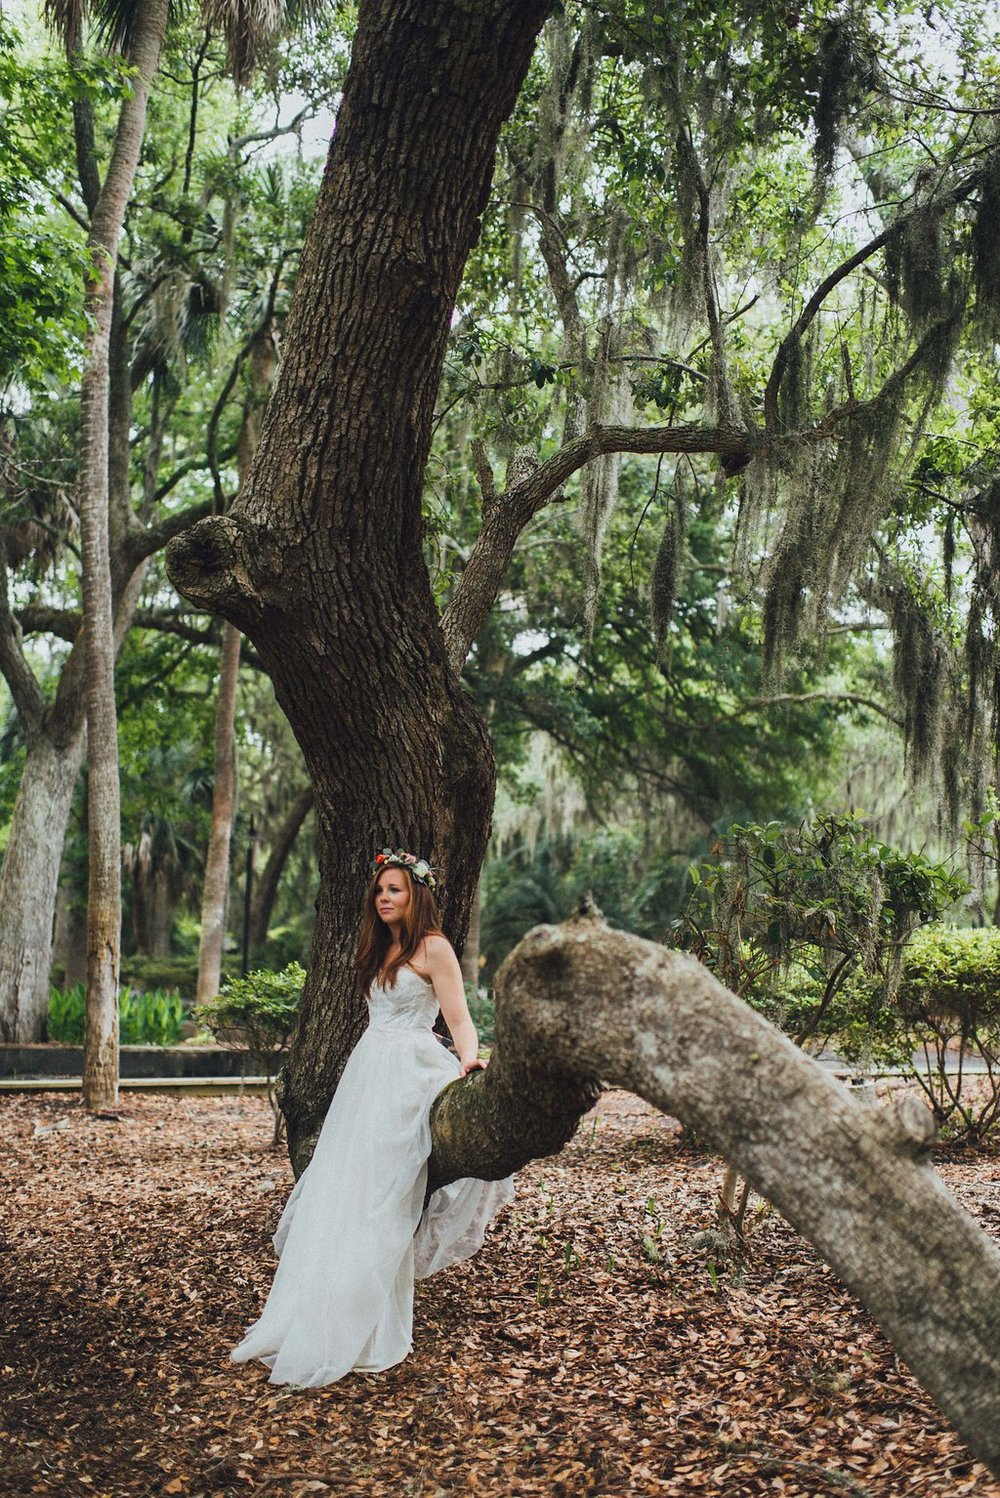 Urban-Poppy-Southern-Wedding-Mallory-and-Justin-photography-ivory-and-beau-bridal-boutique-sarah-seven-marion-boho-bride-indie-bride-indie-wedding-dress-savannah-weddings-hilton-head-weddings-beach-wedding-12.jpg